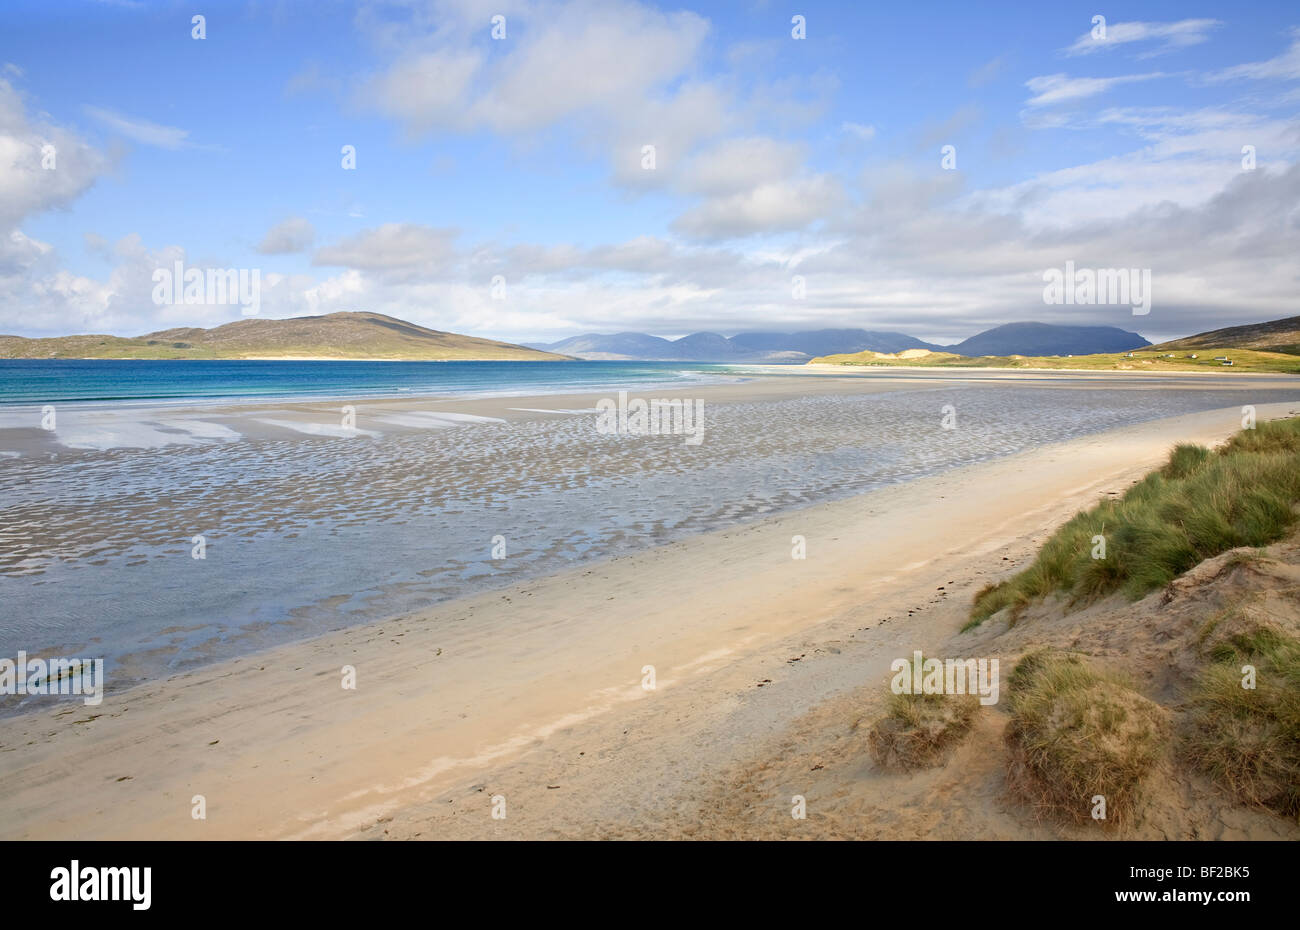 View across the Sound of Taransay from Seilibost, Isle of Harris, Outer Hebrides, Scotland - Stock Image